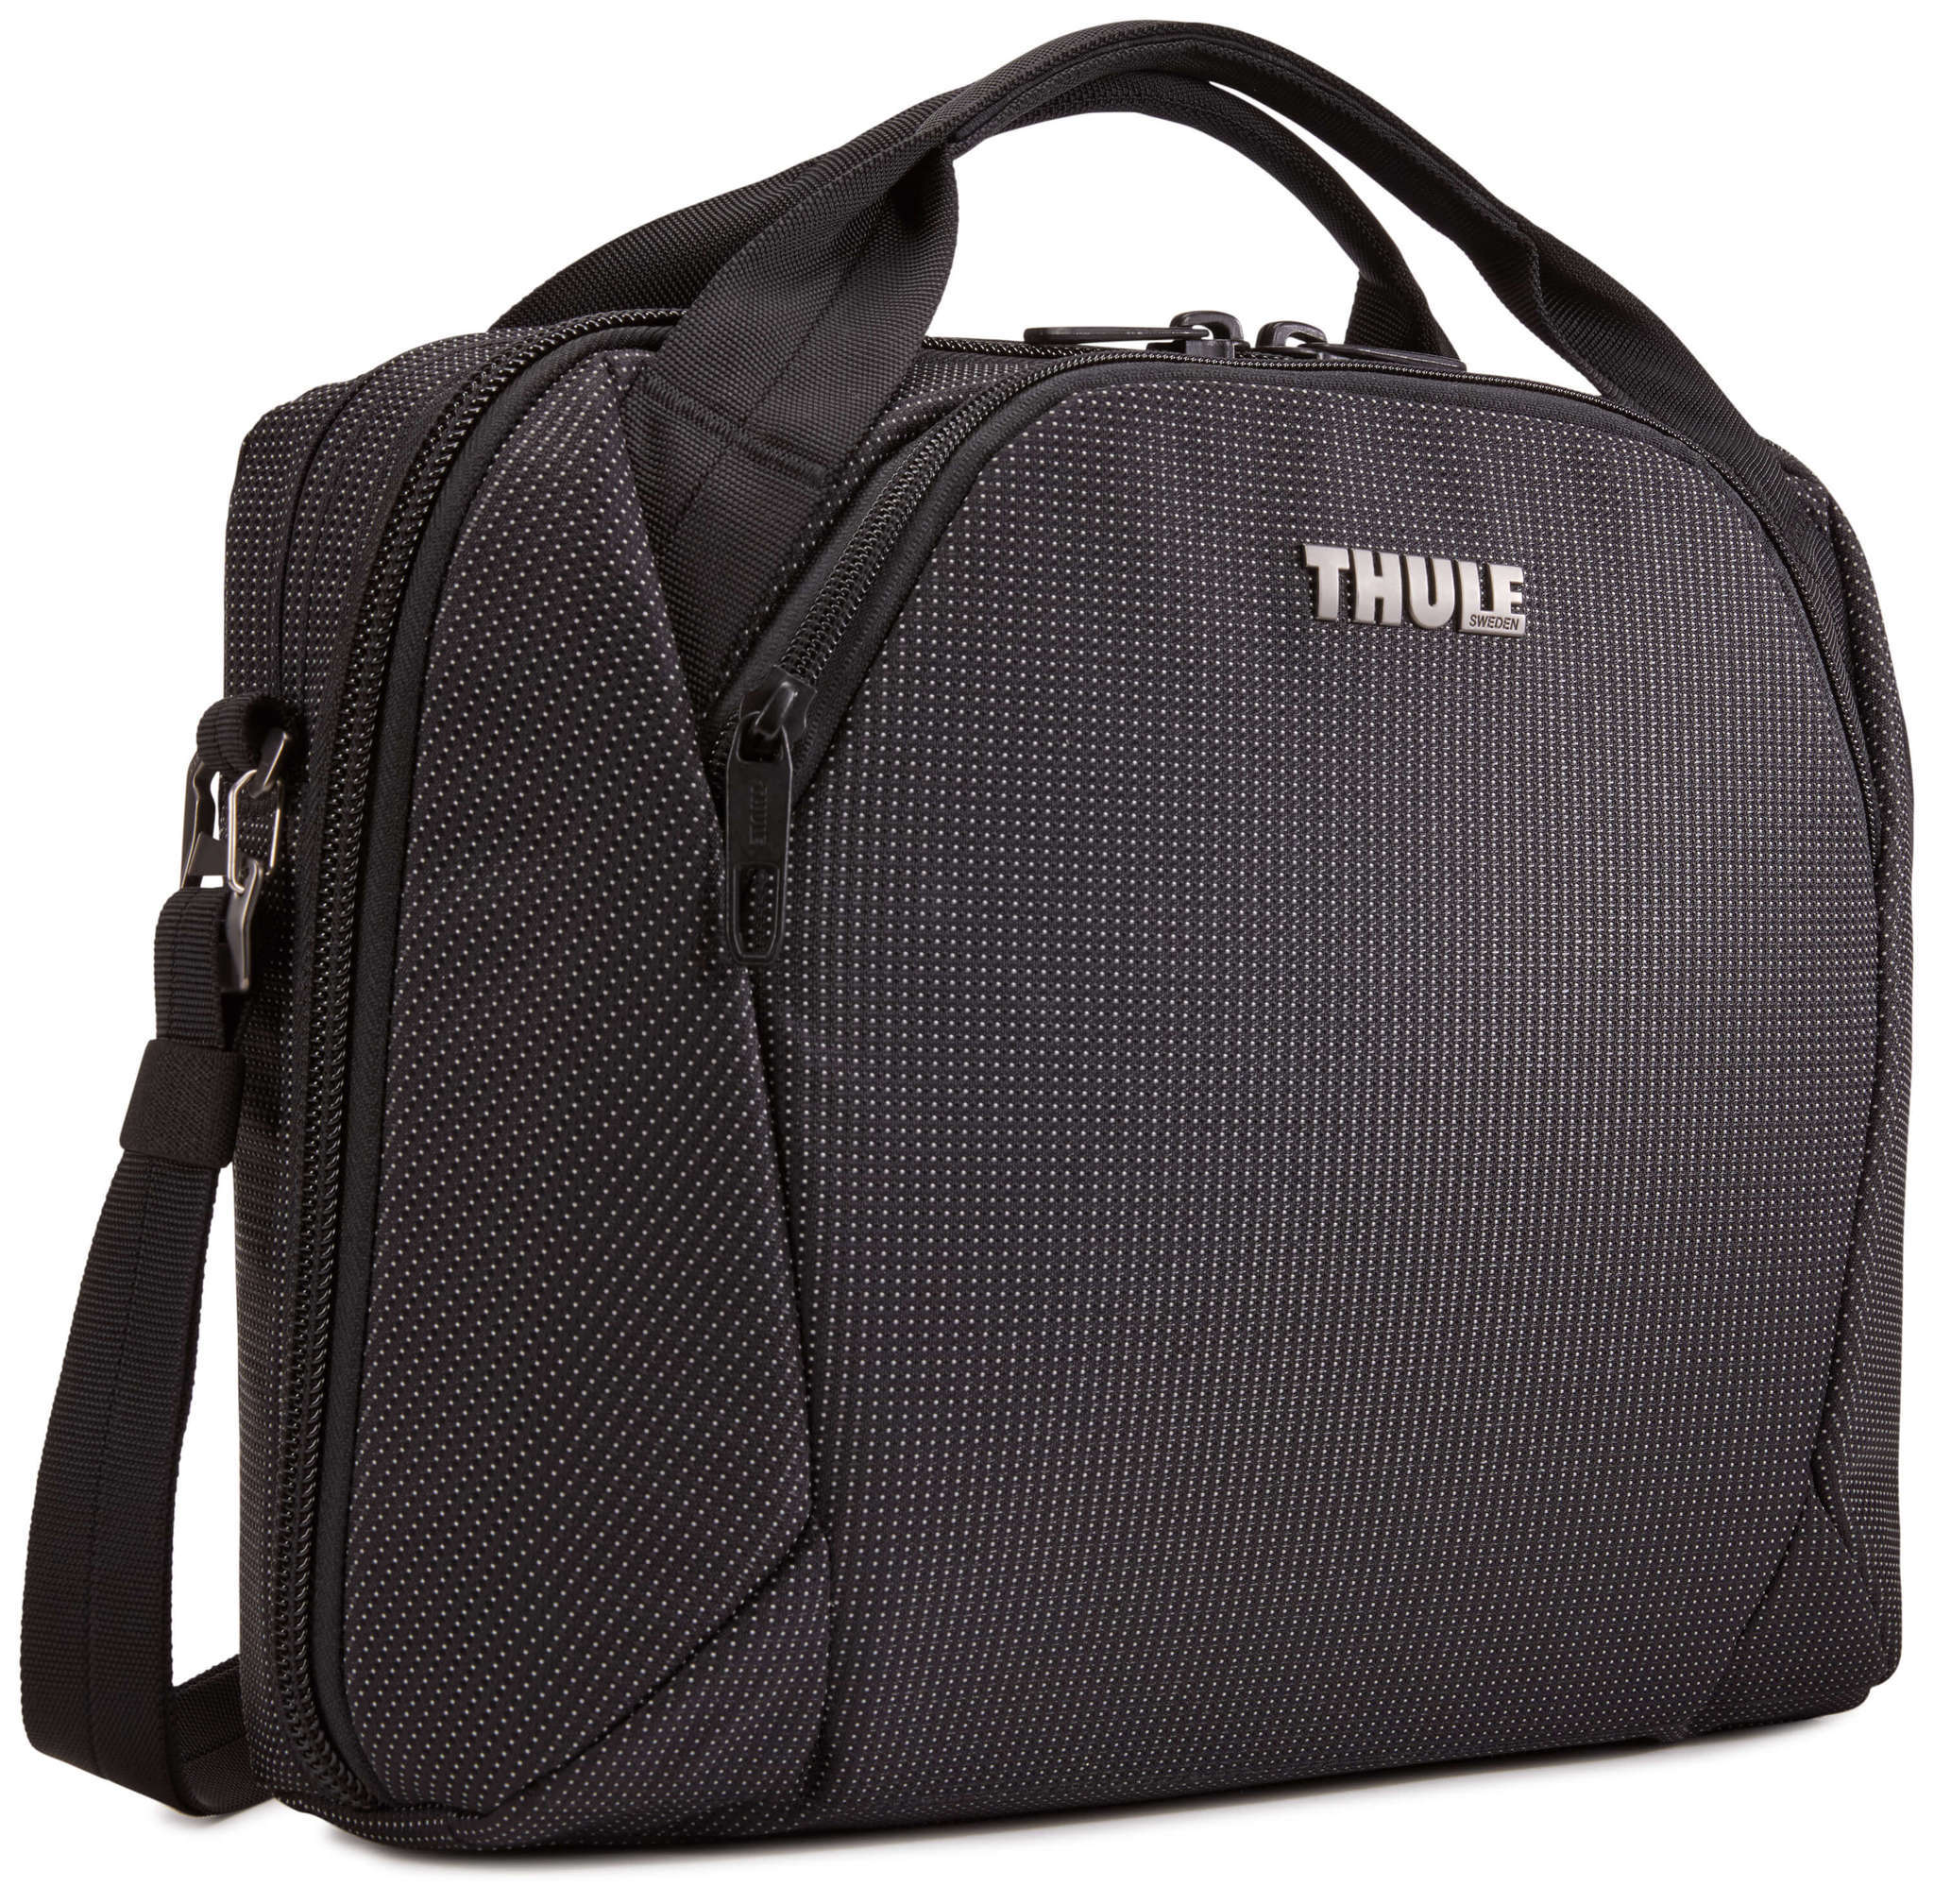 "Thule Crossover Сумка для ноутбука Thule Crossover 2 Laptop Bag 13.3"" Thule_Crossover_2_C2LB113_Black_Iso_3203843.jpeg"